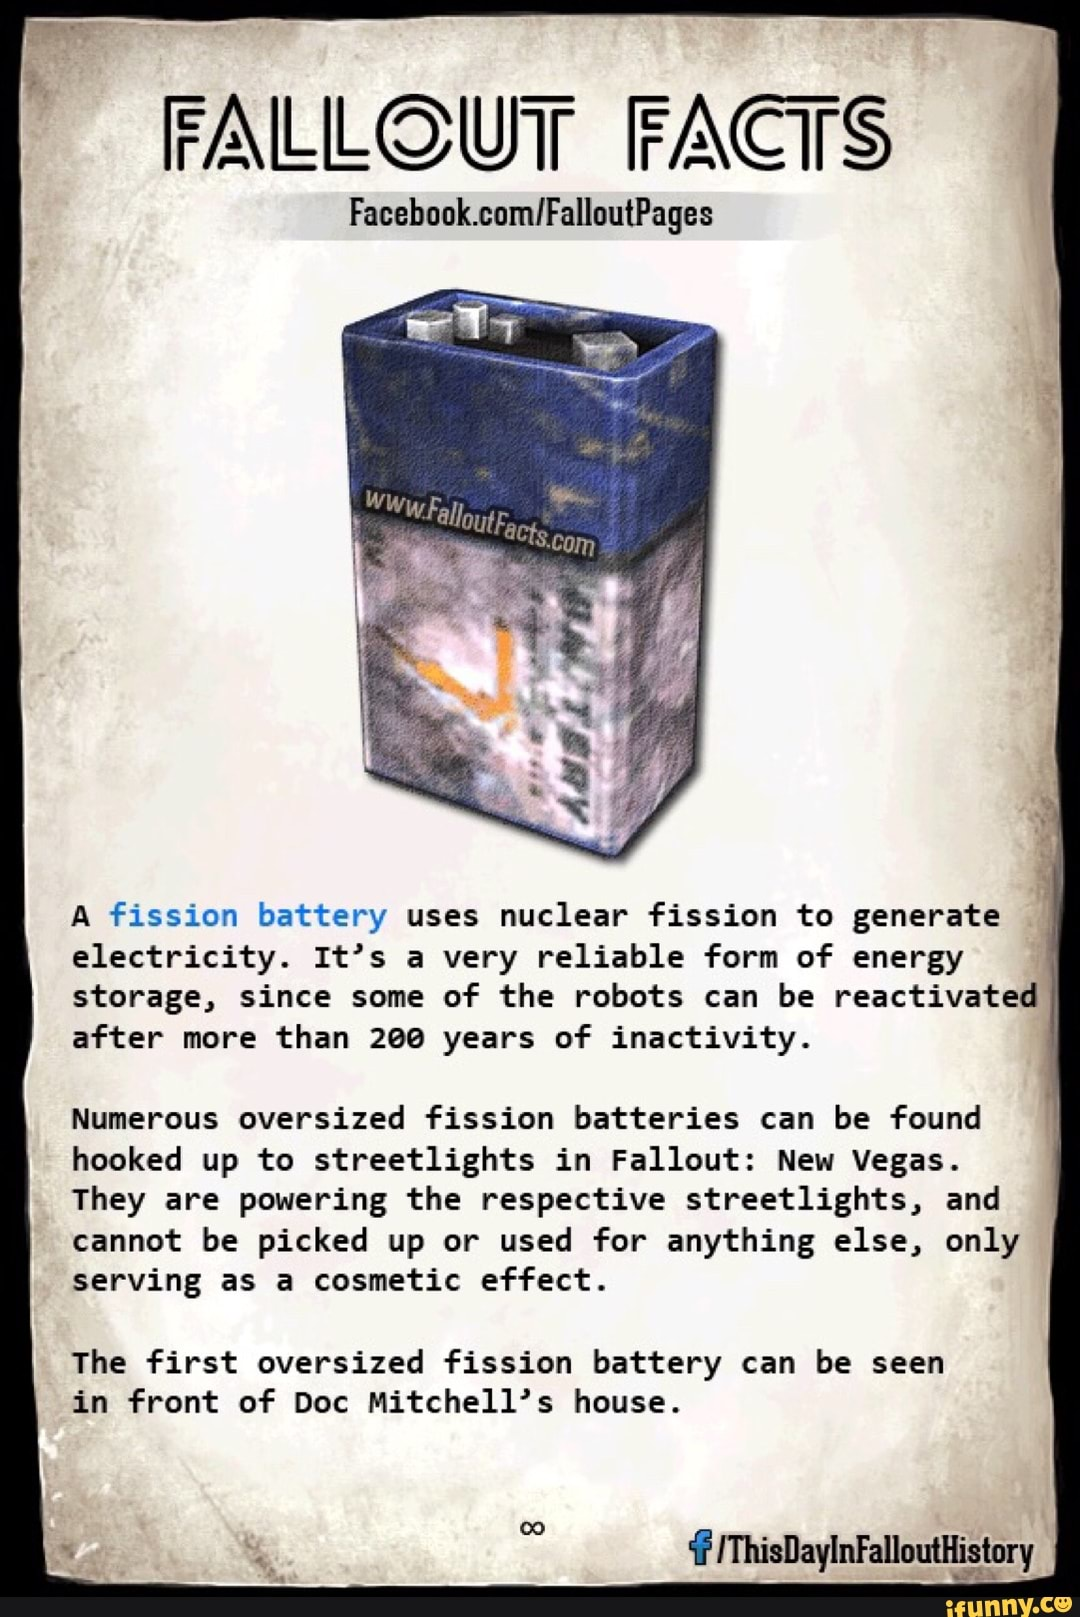 3 A fission battery uses nuclear fission to generate